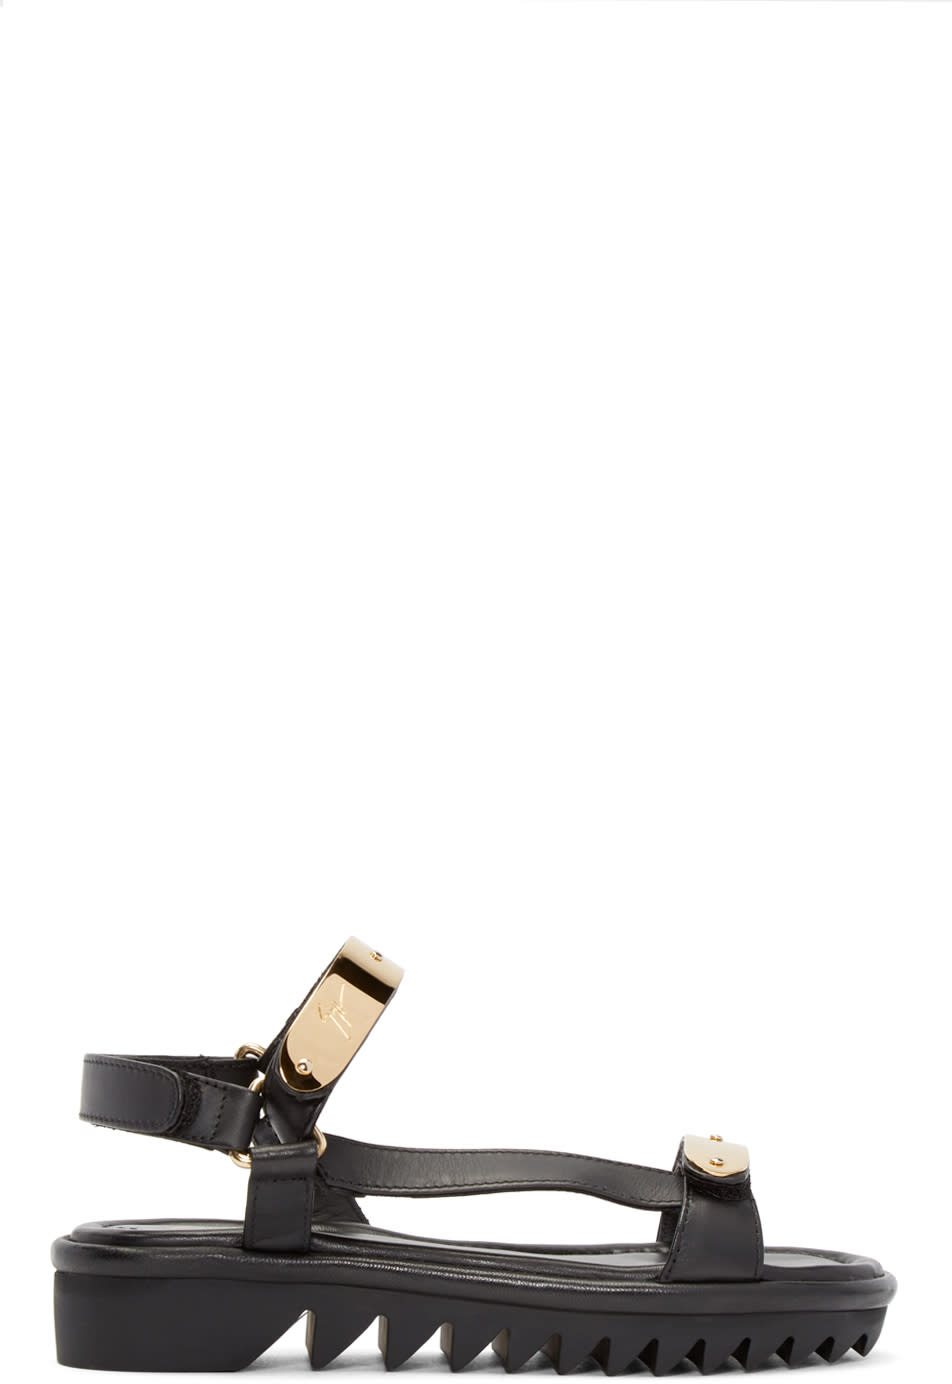 Giuseppe Zanotti Black and Gold Two Bar Sandals